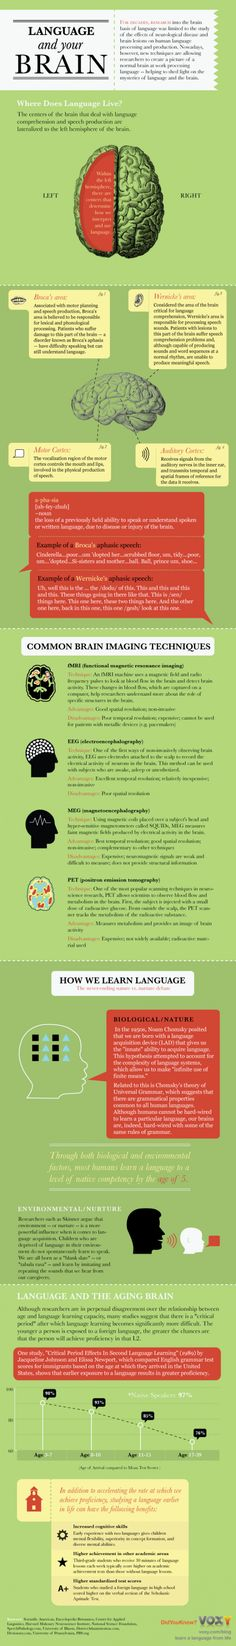 Language and the brain.  Repinned by SOS Inc. Resources.  Follow all our boards at http://pinterest.com/sostherapy  for therapy resources. #learn #spanish #kids